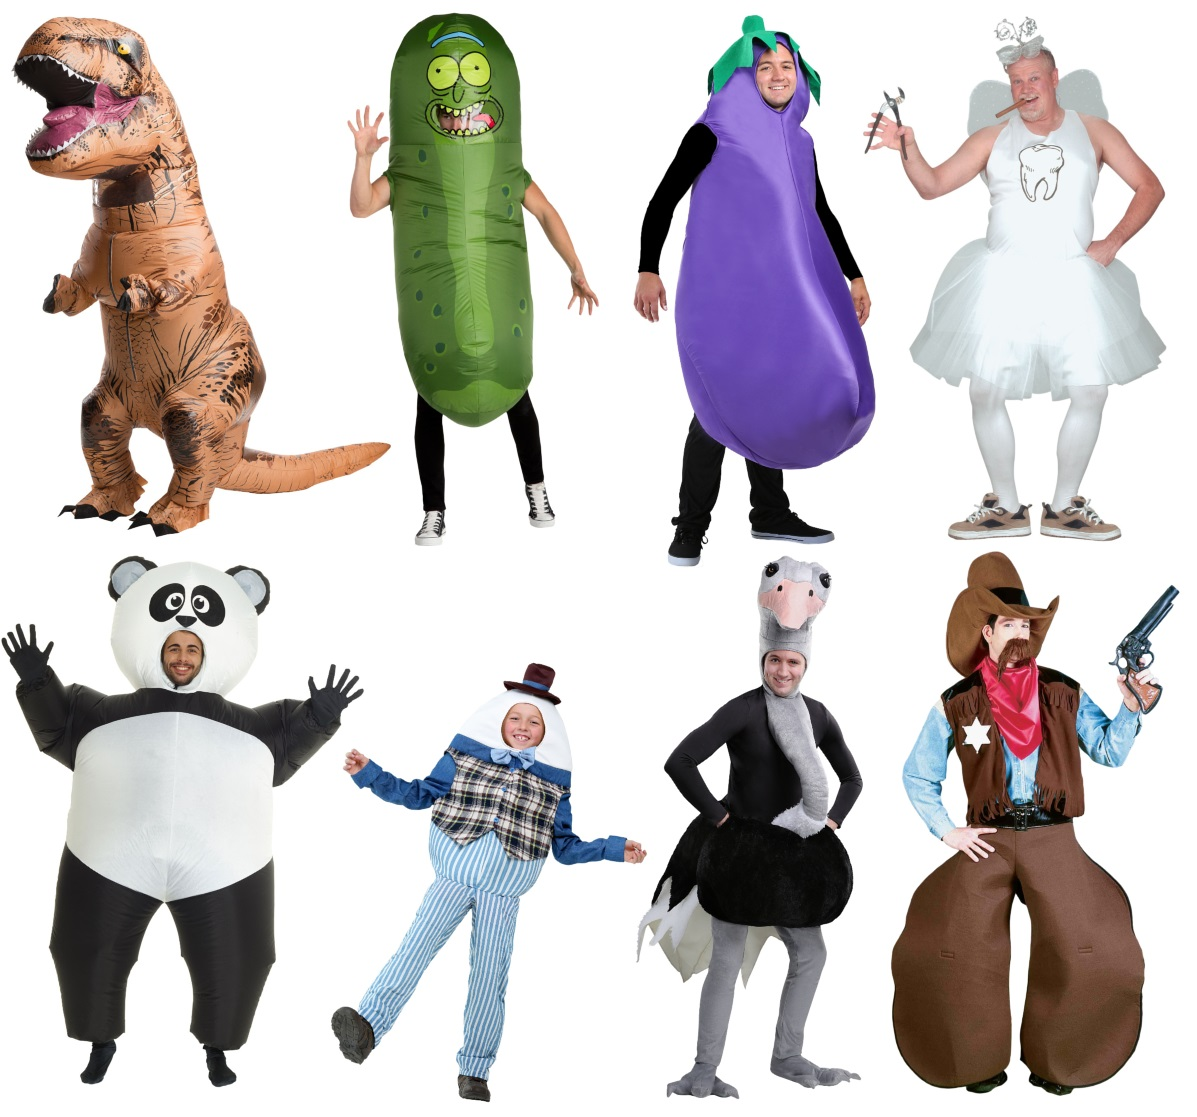 Ridiculous Costumes to Make Any Dance Look Silly